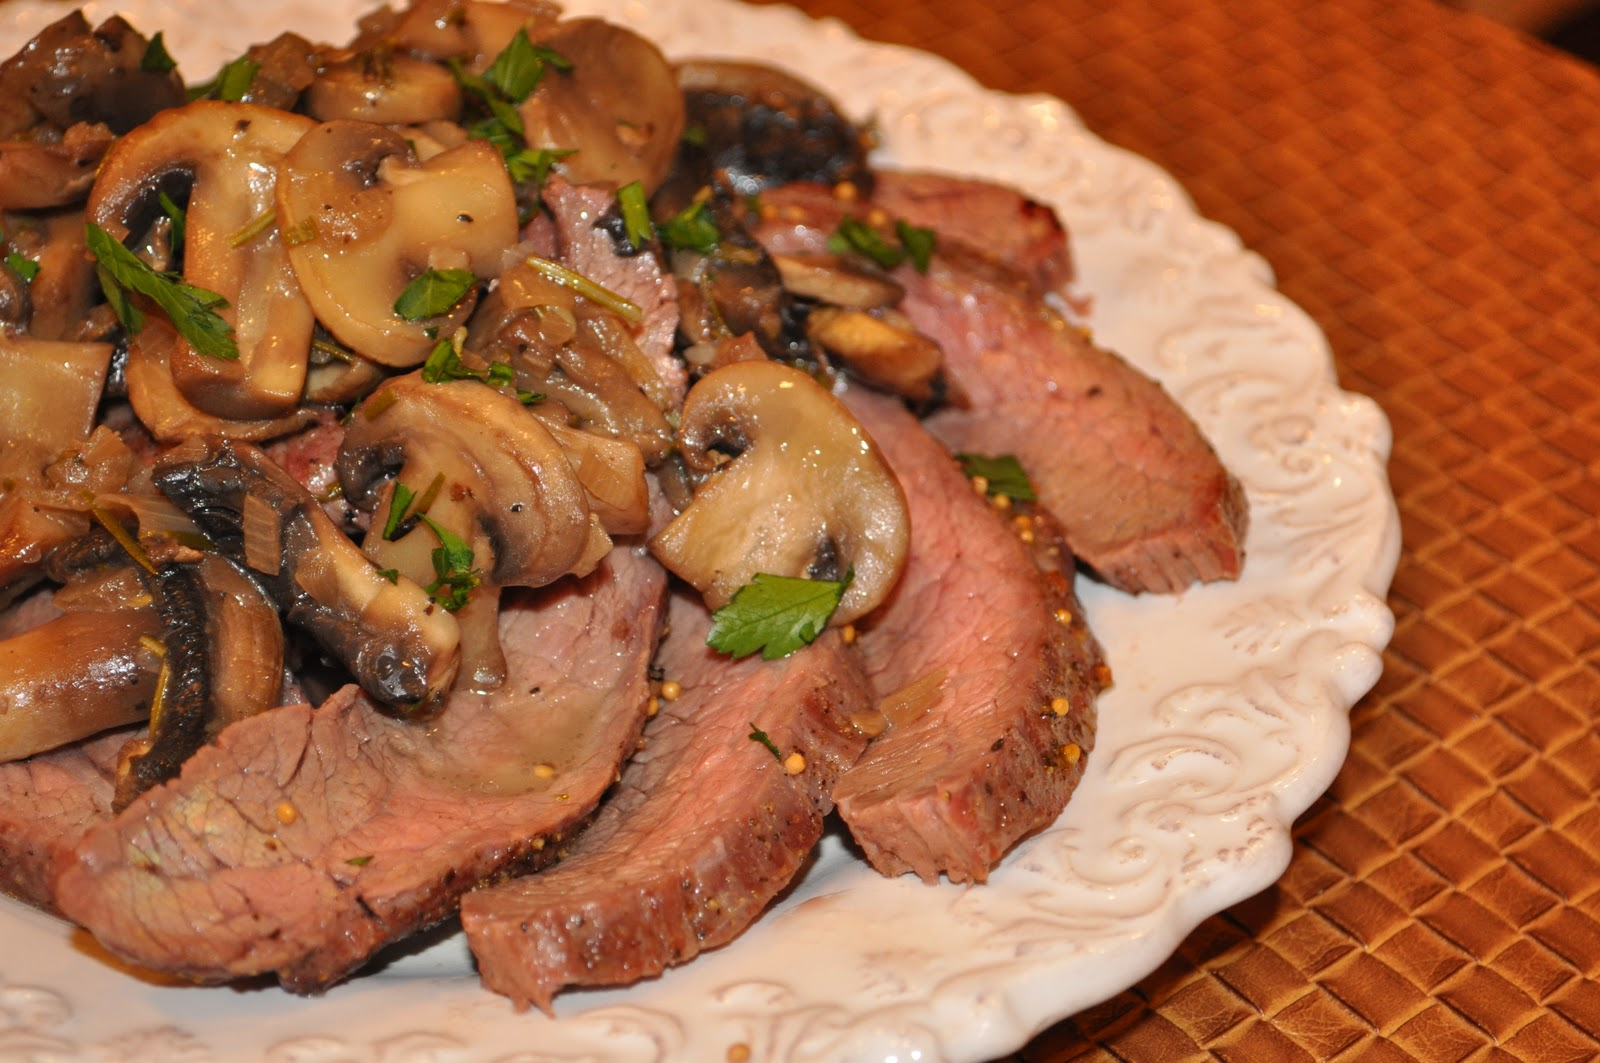 Grilled Flank Steak with Mushroom Sauce2-1/2 lb flank steak 1/2 cup ...